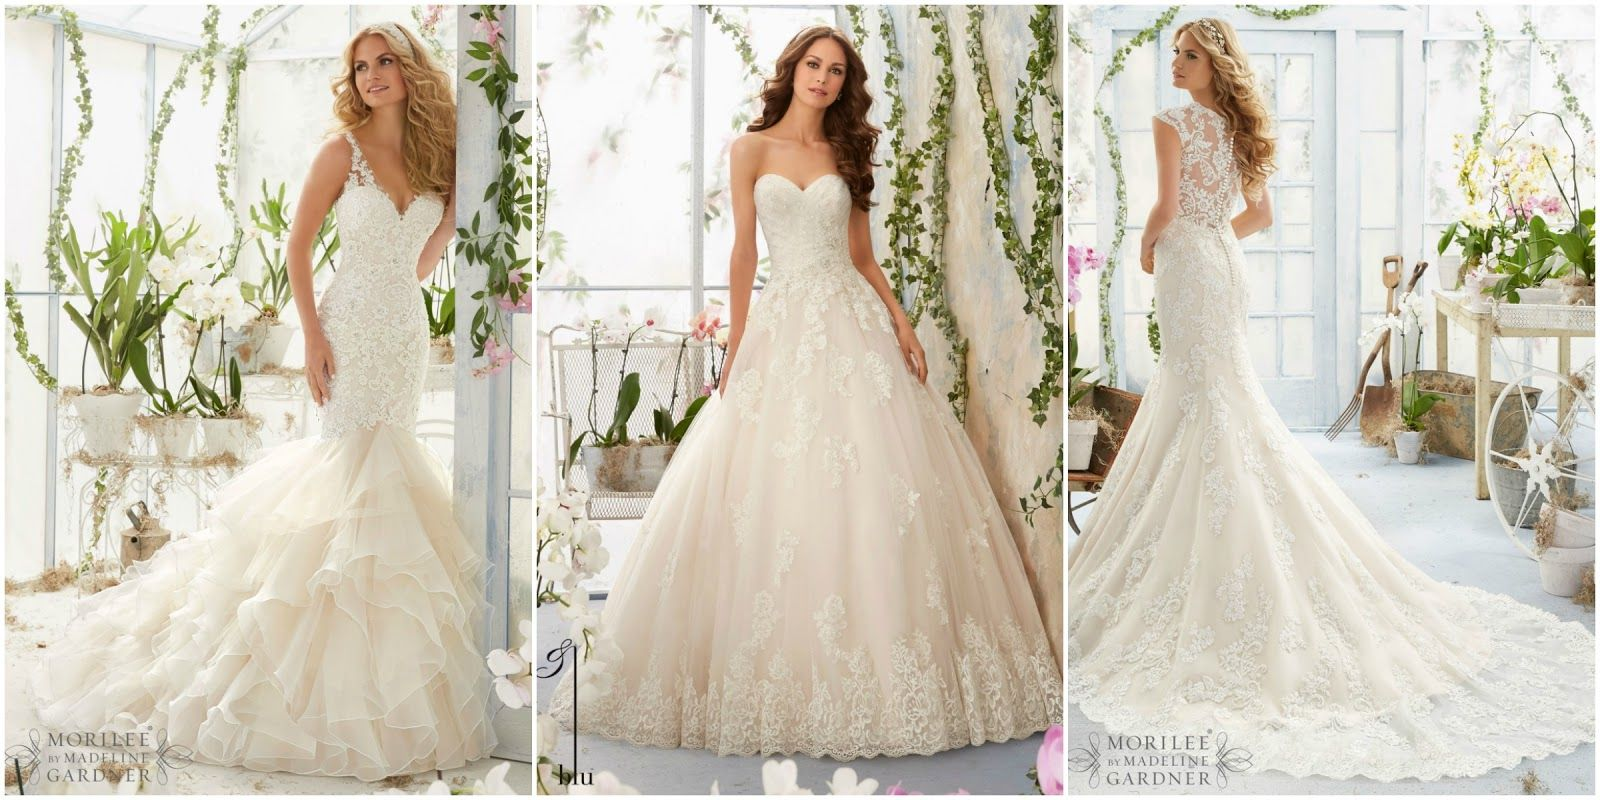 Vintage Wedding Dresses Miami - How to Dress for A Wedding Check ...